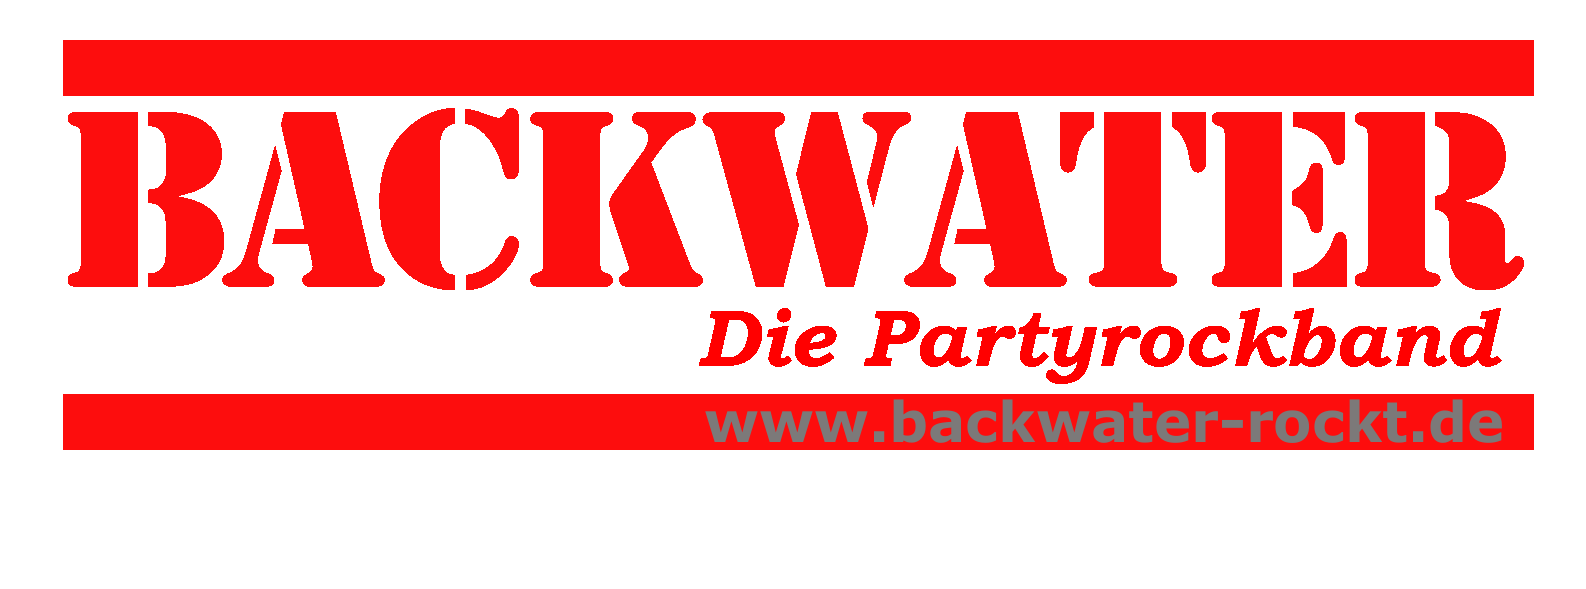 backwater-rockt.de